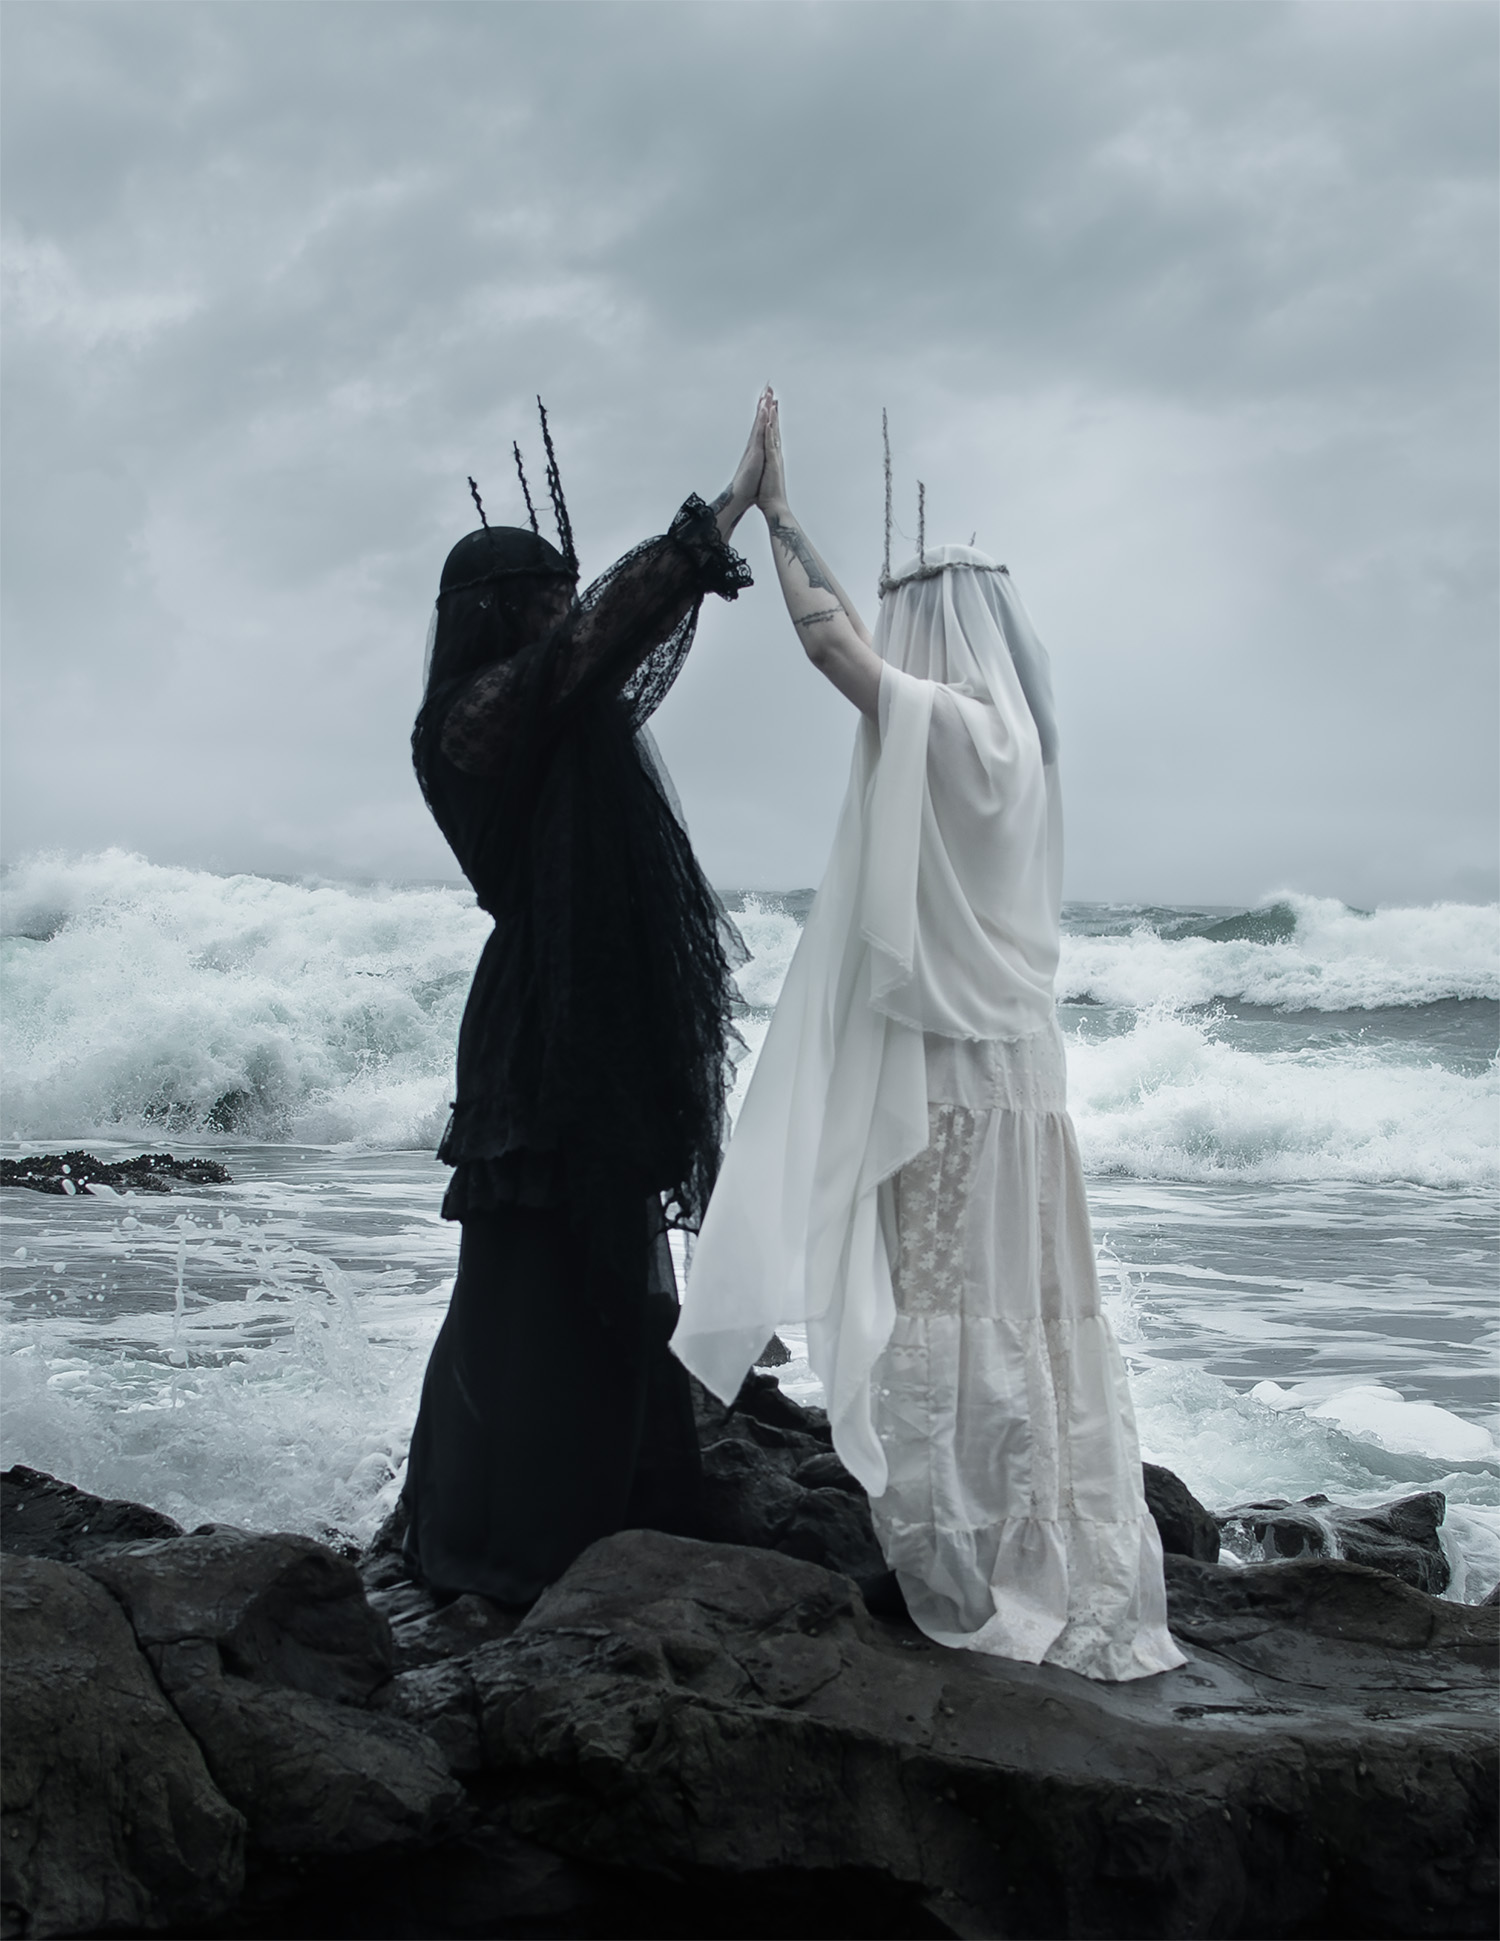 American Ghoul, Siren, two spectral figures holding hands on the shore